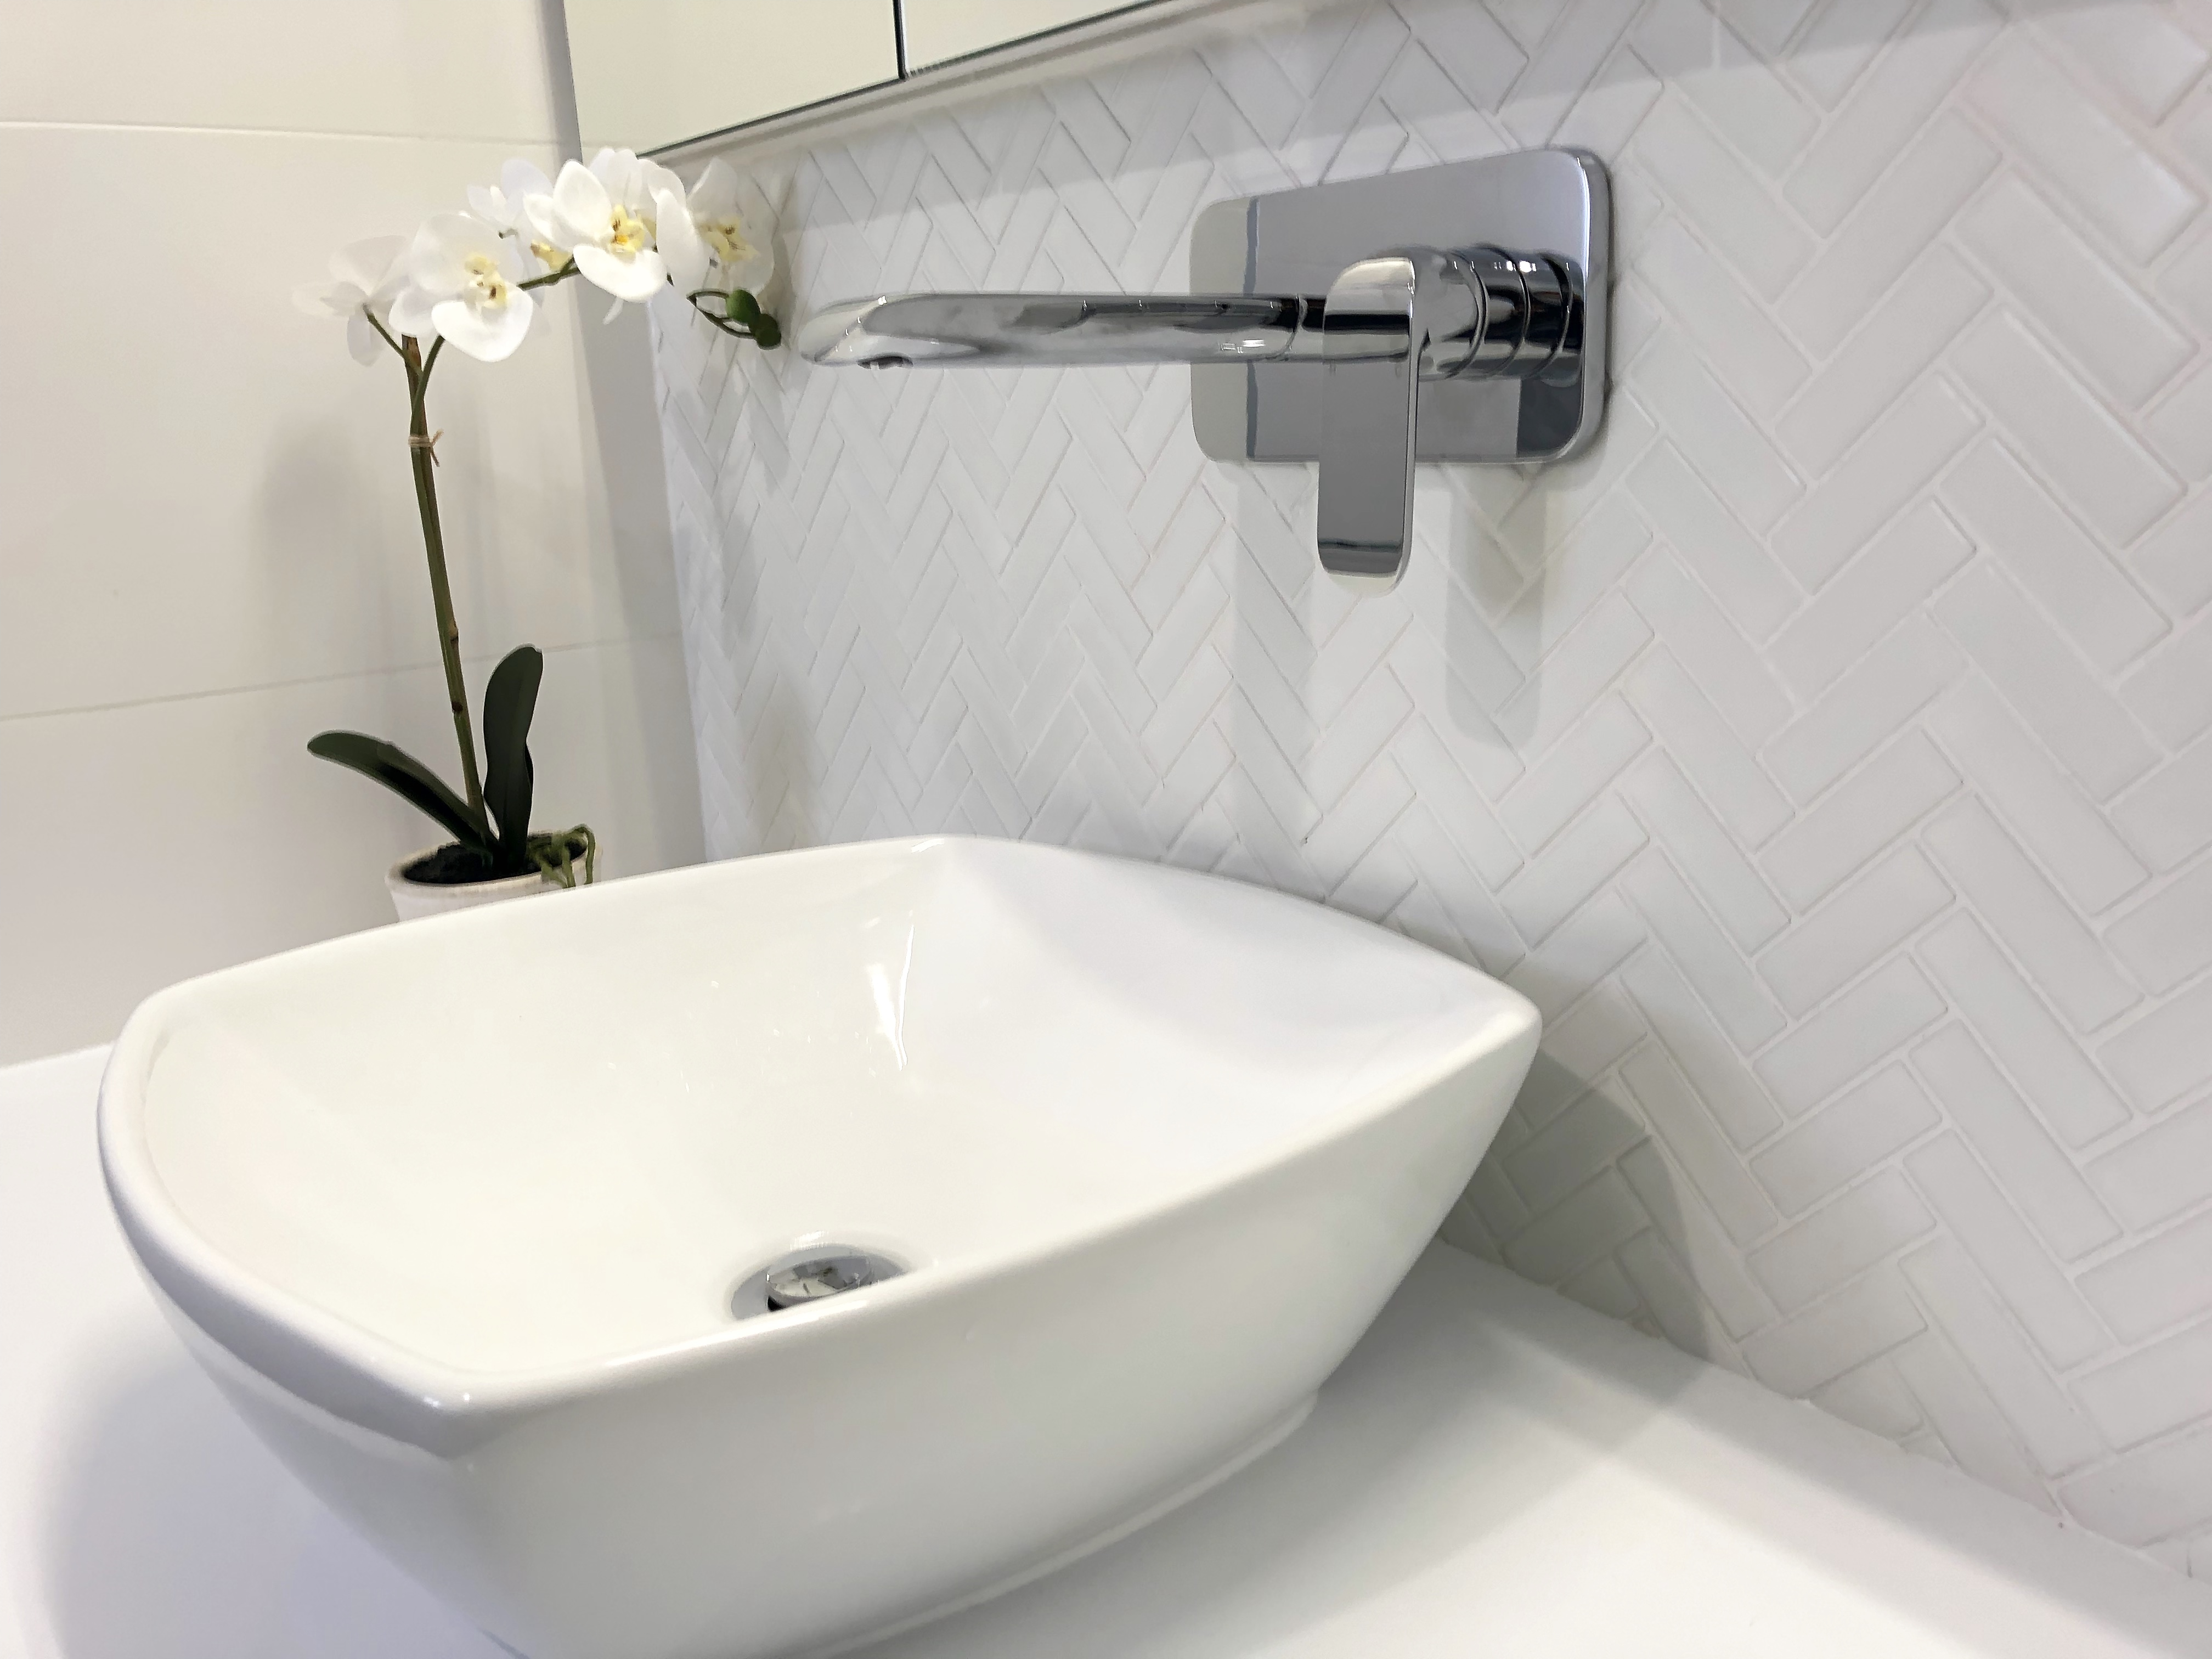 Gorgeous white herringbone tile adds character to this ensuite - bathroom renovation by Master Bathrooms & Kitchens.